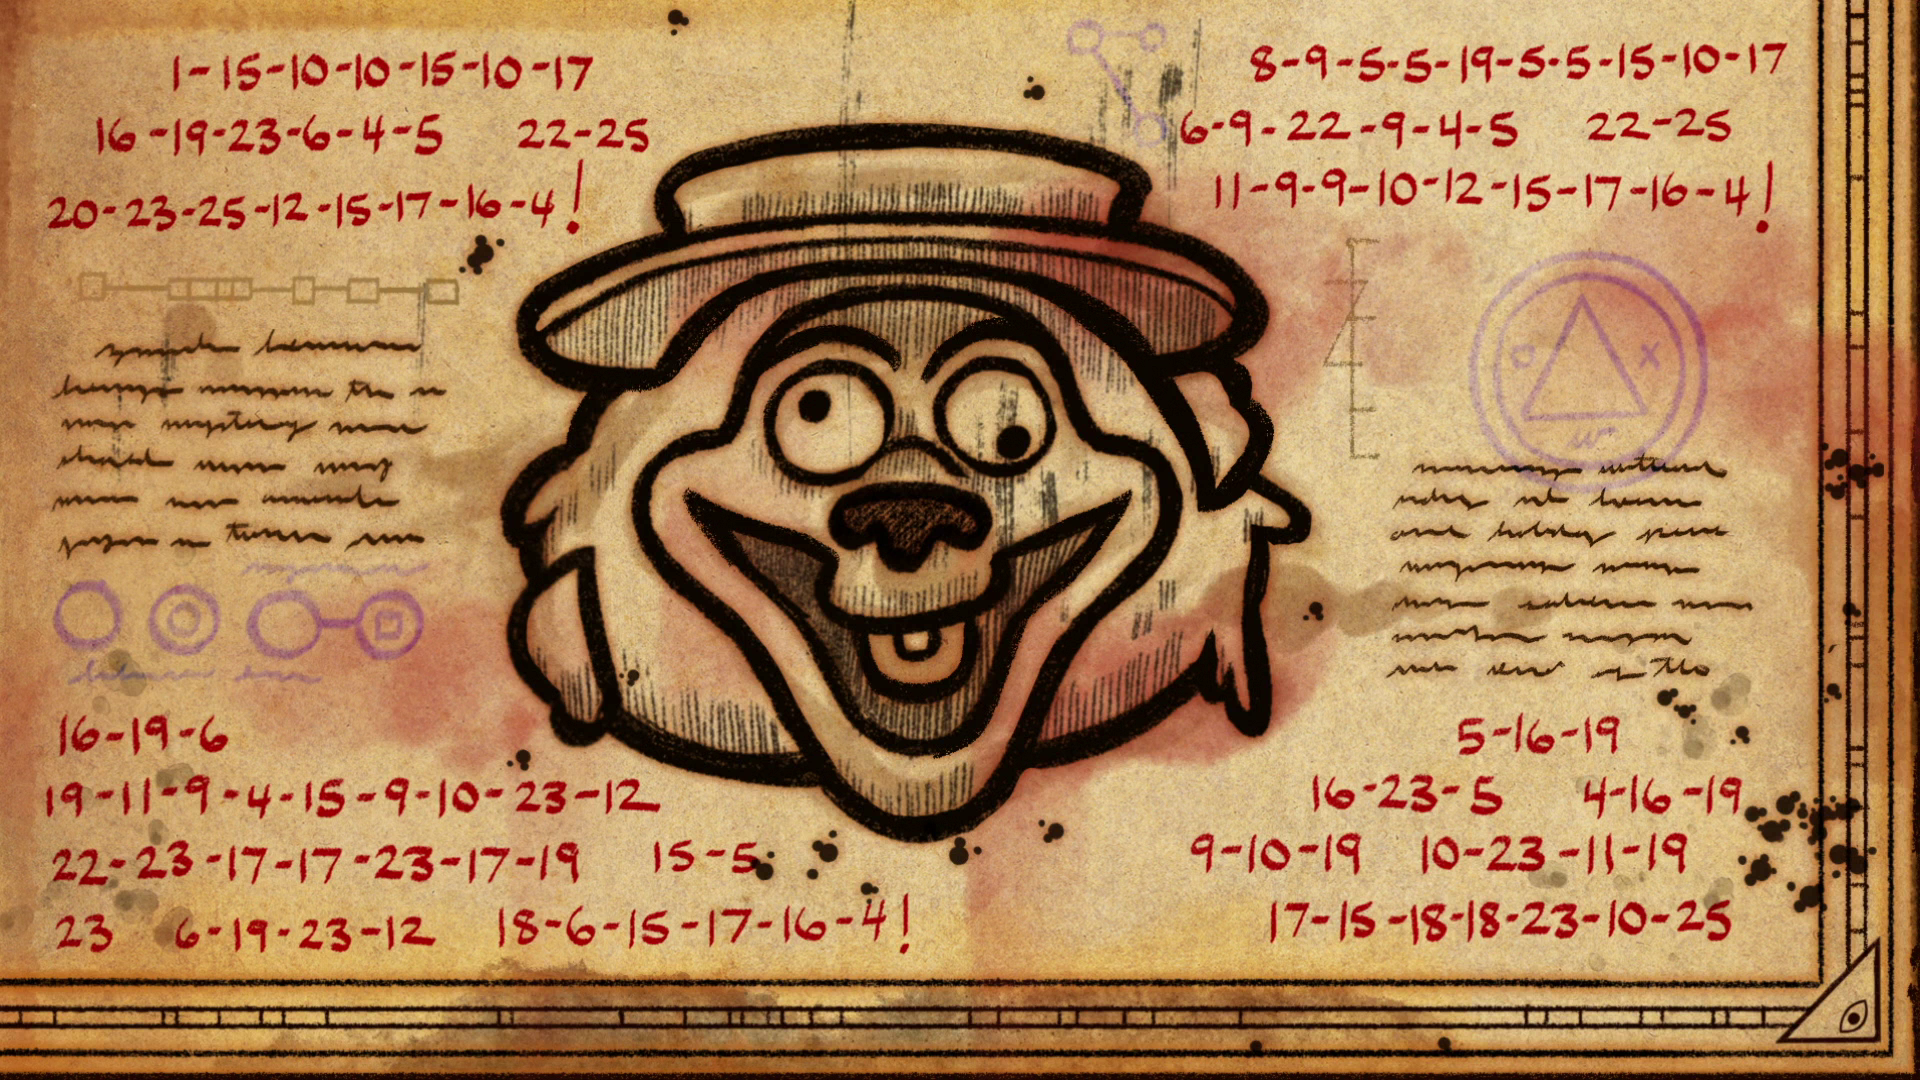 「gravity falls s2 ep 5 end credits words」の画像検索結果